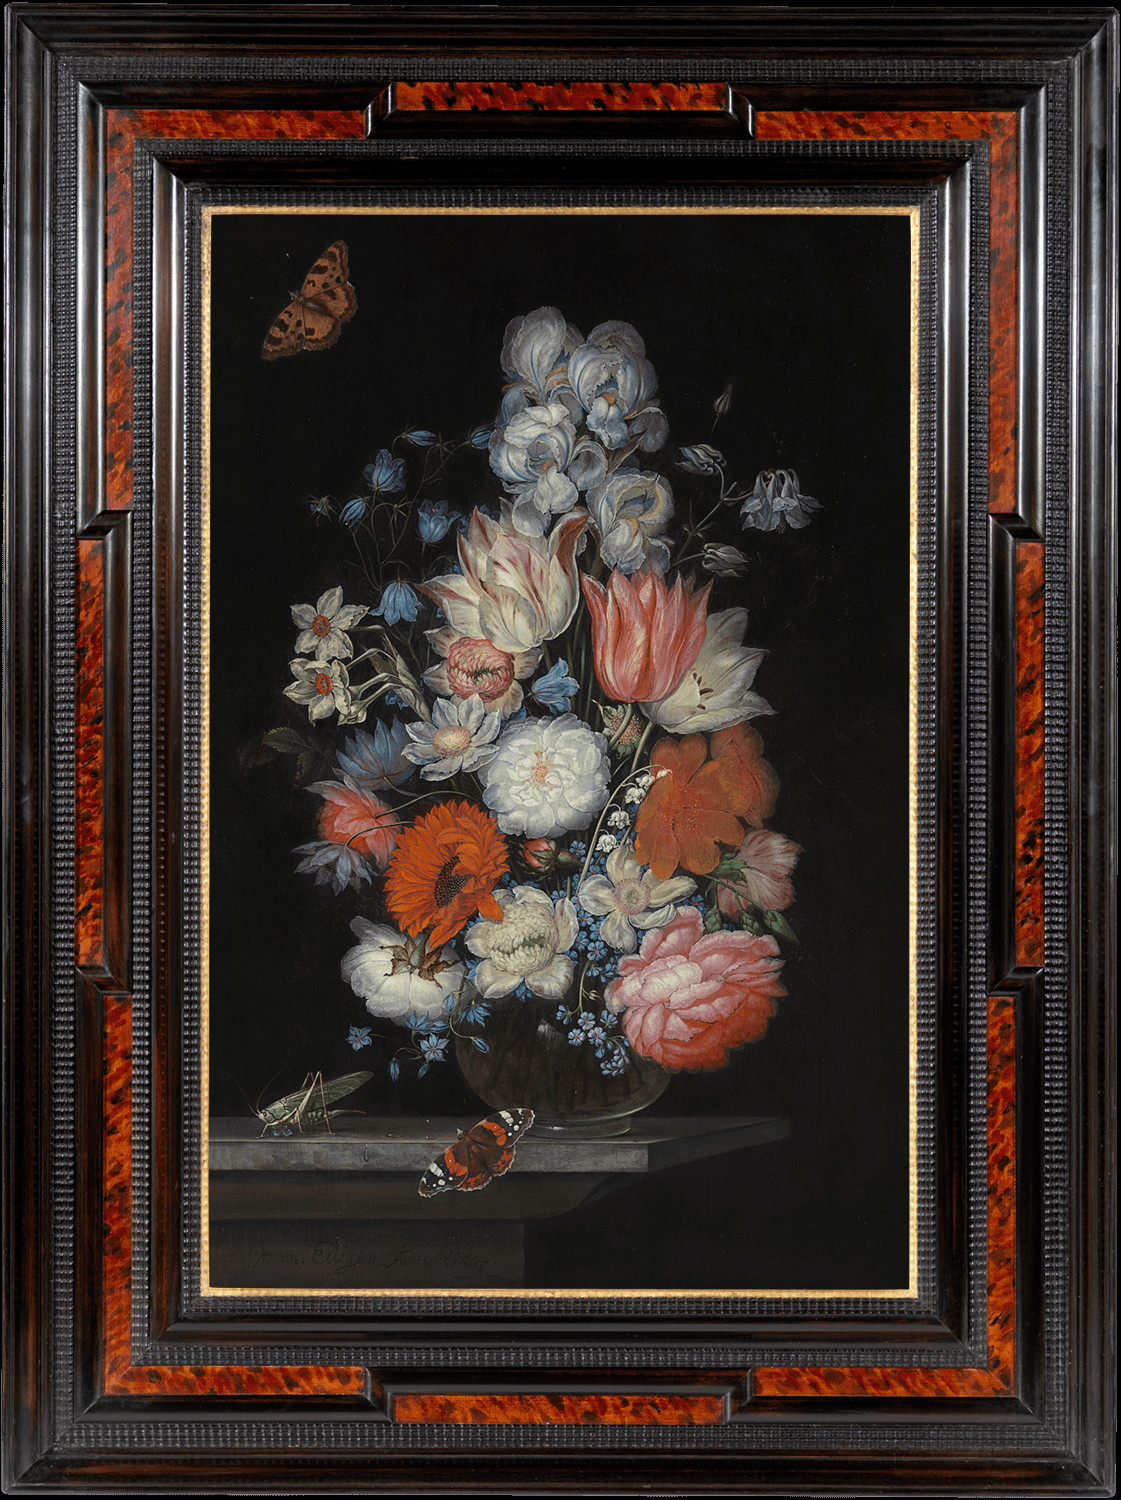 vase of flowers de heem of french continental furniture alain r truong page 5 throughout ottmar elliger the elder still life of flowers in a vase